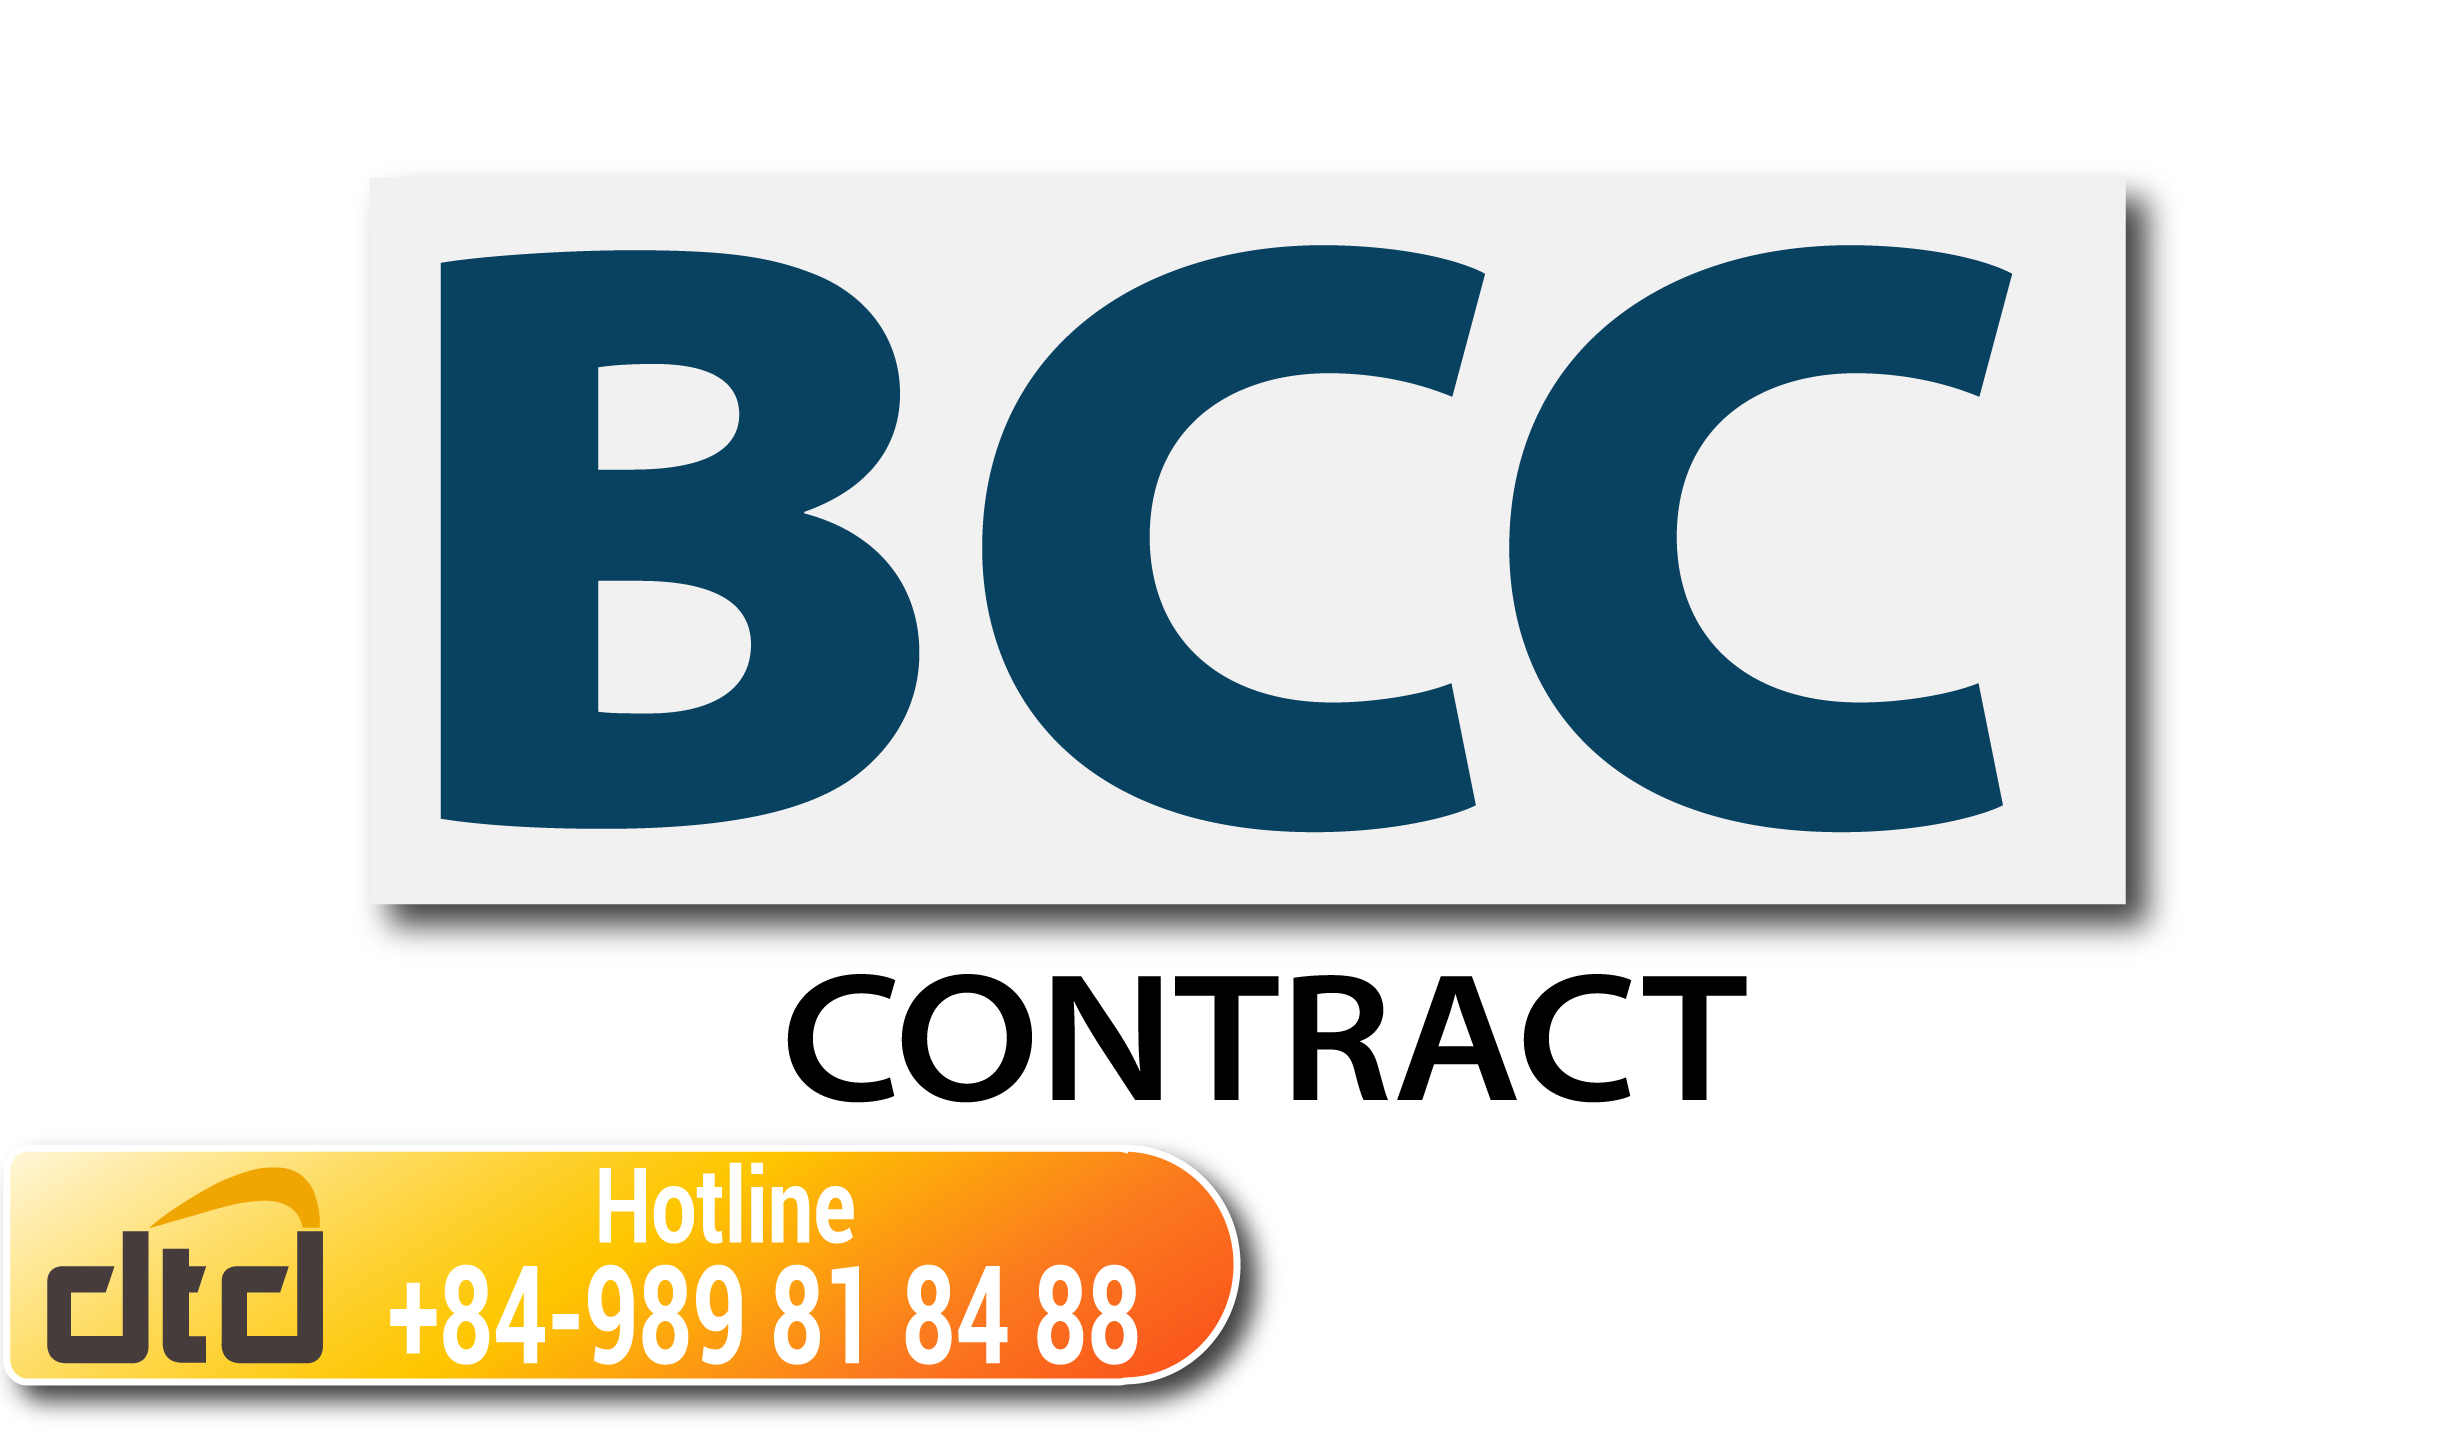 PROCEDURES FOR FOREIGN INVESTMENT INTO VIETNAM BY BUSINESS COOPERATION CONTRACT (BCC CONTRACT)